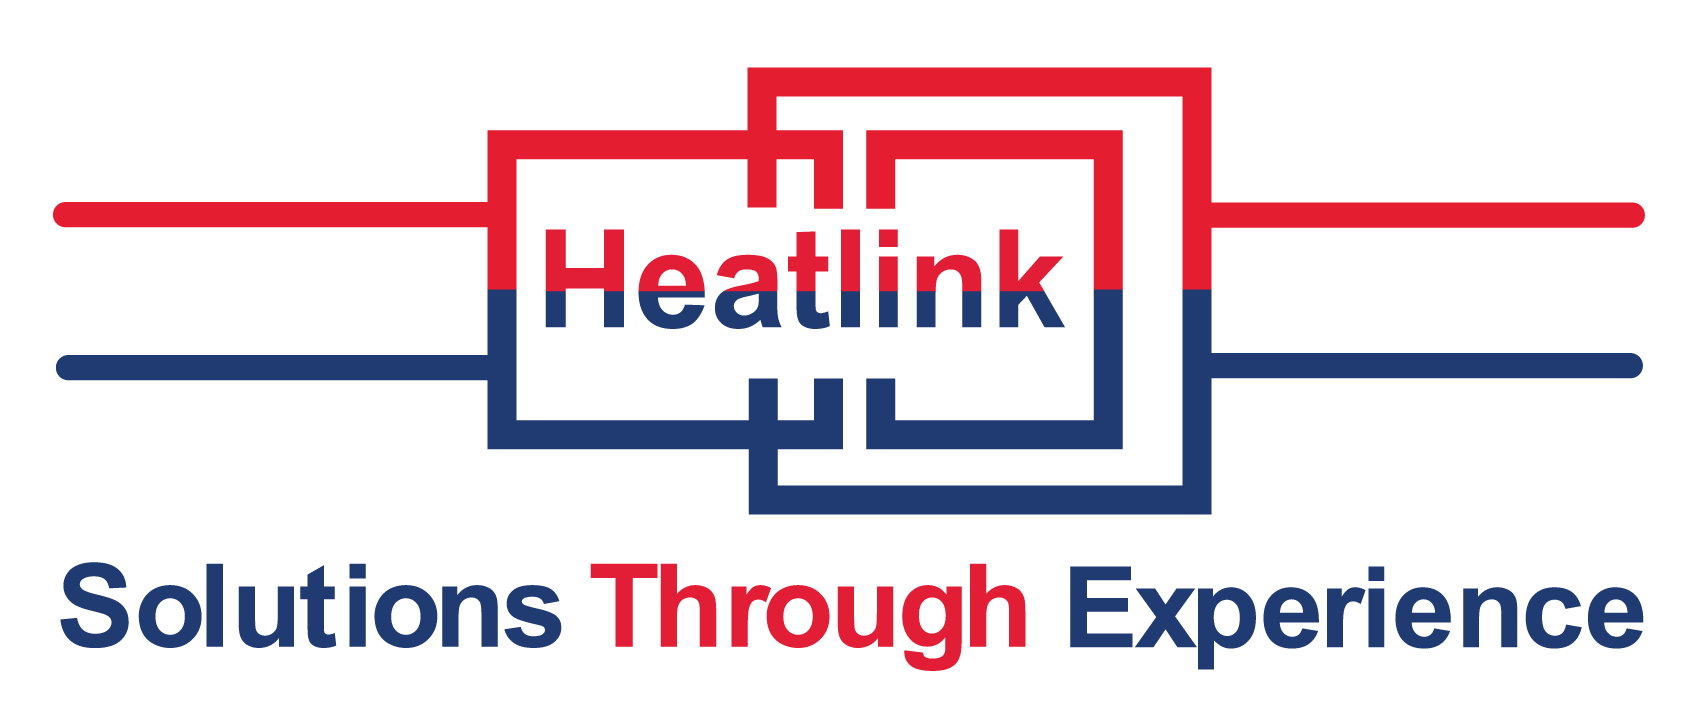 HEATLINK LOGO - HIU Maintenance